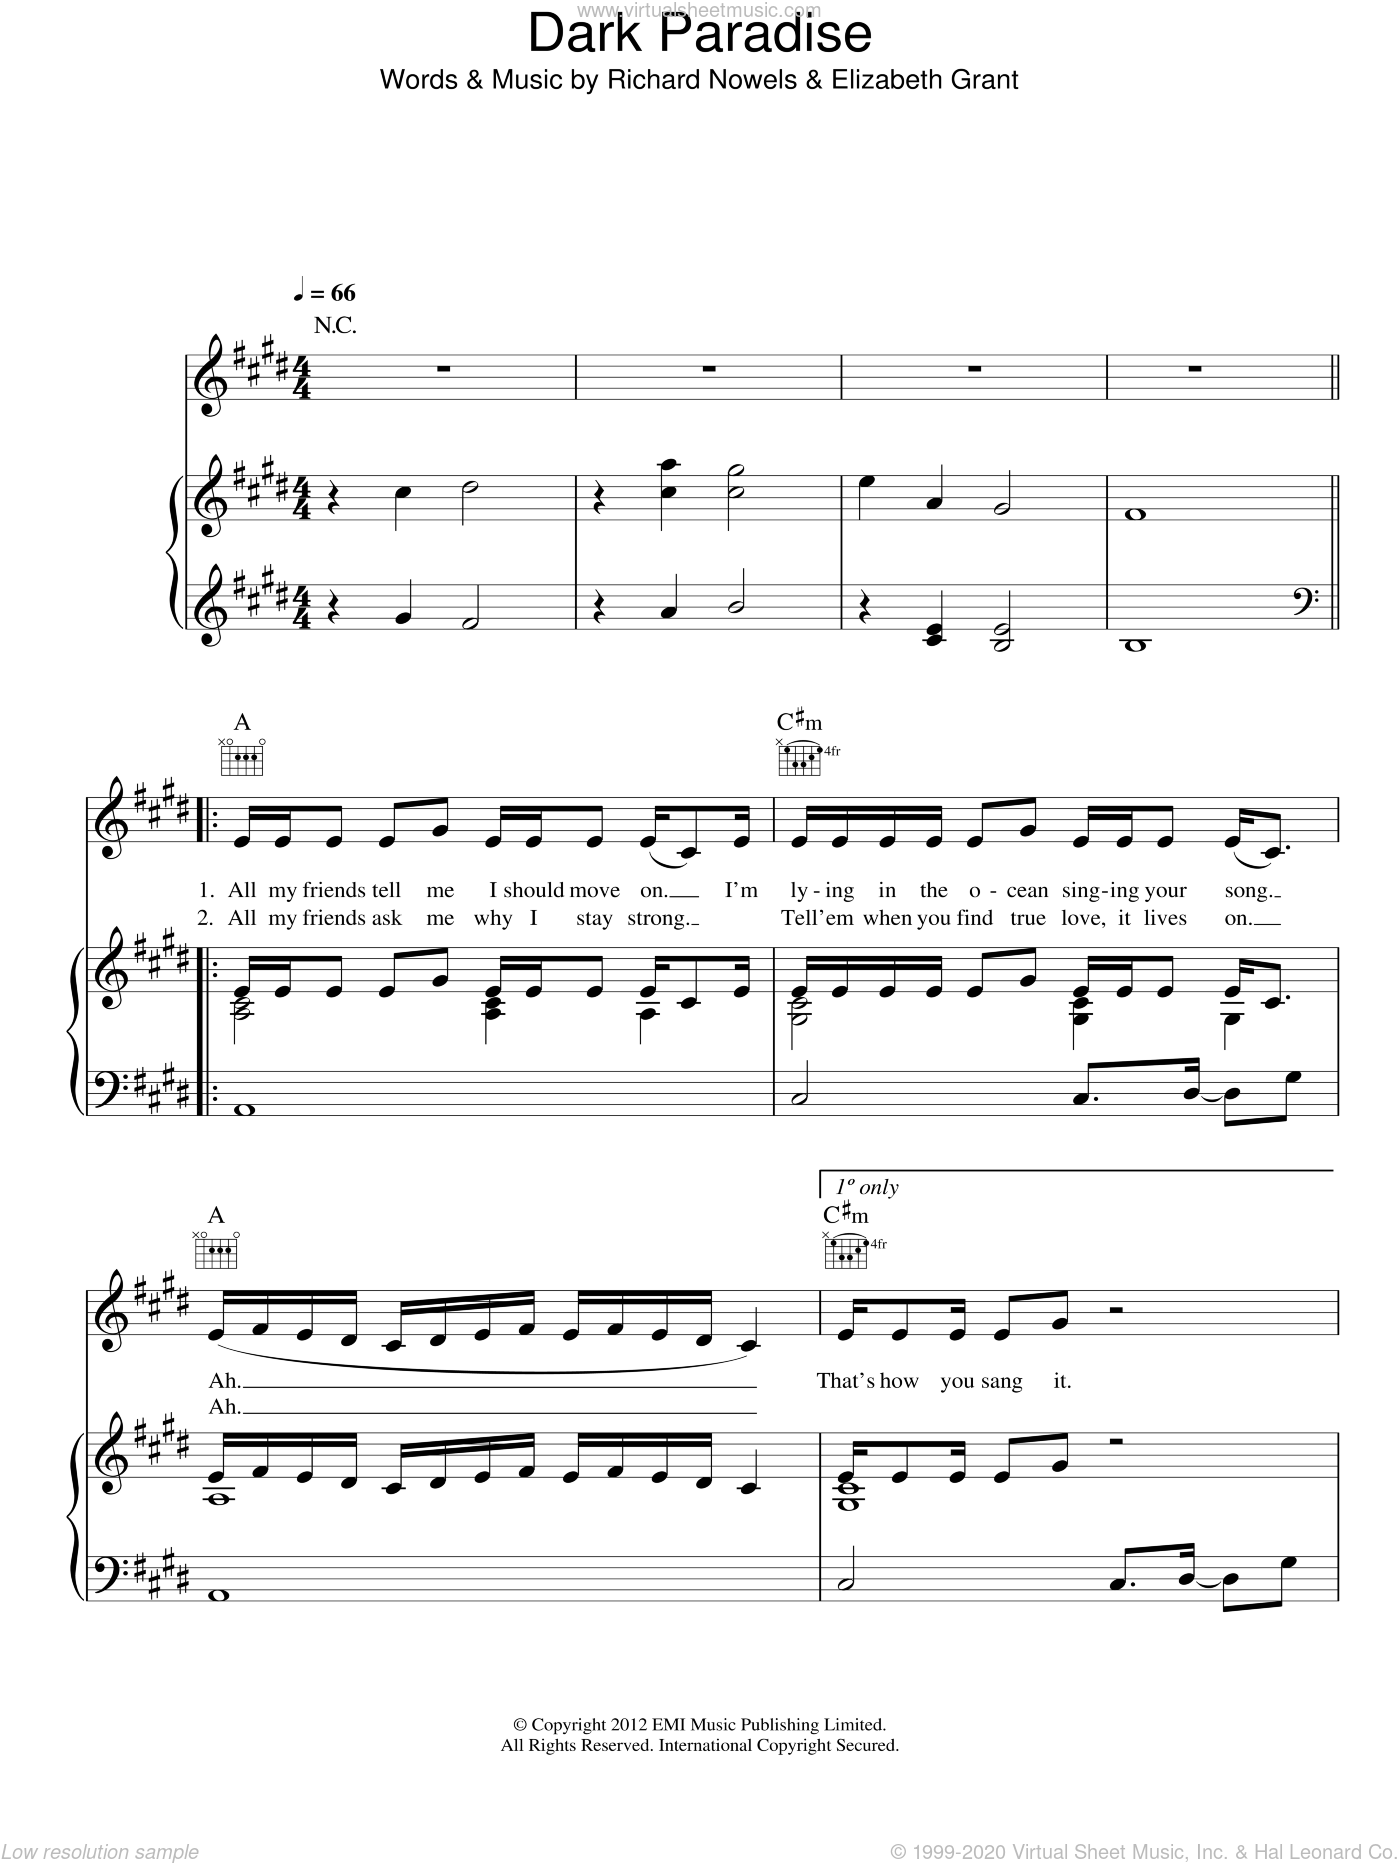 Dark Paradise sheet music for voice, piano or guitar by Rick Nowels